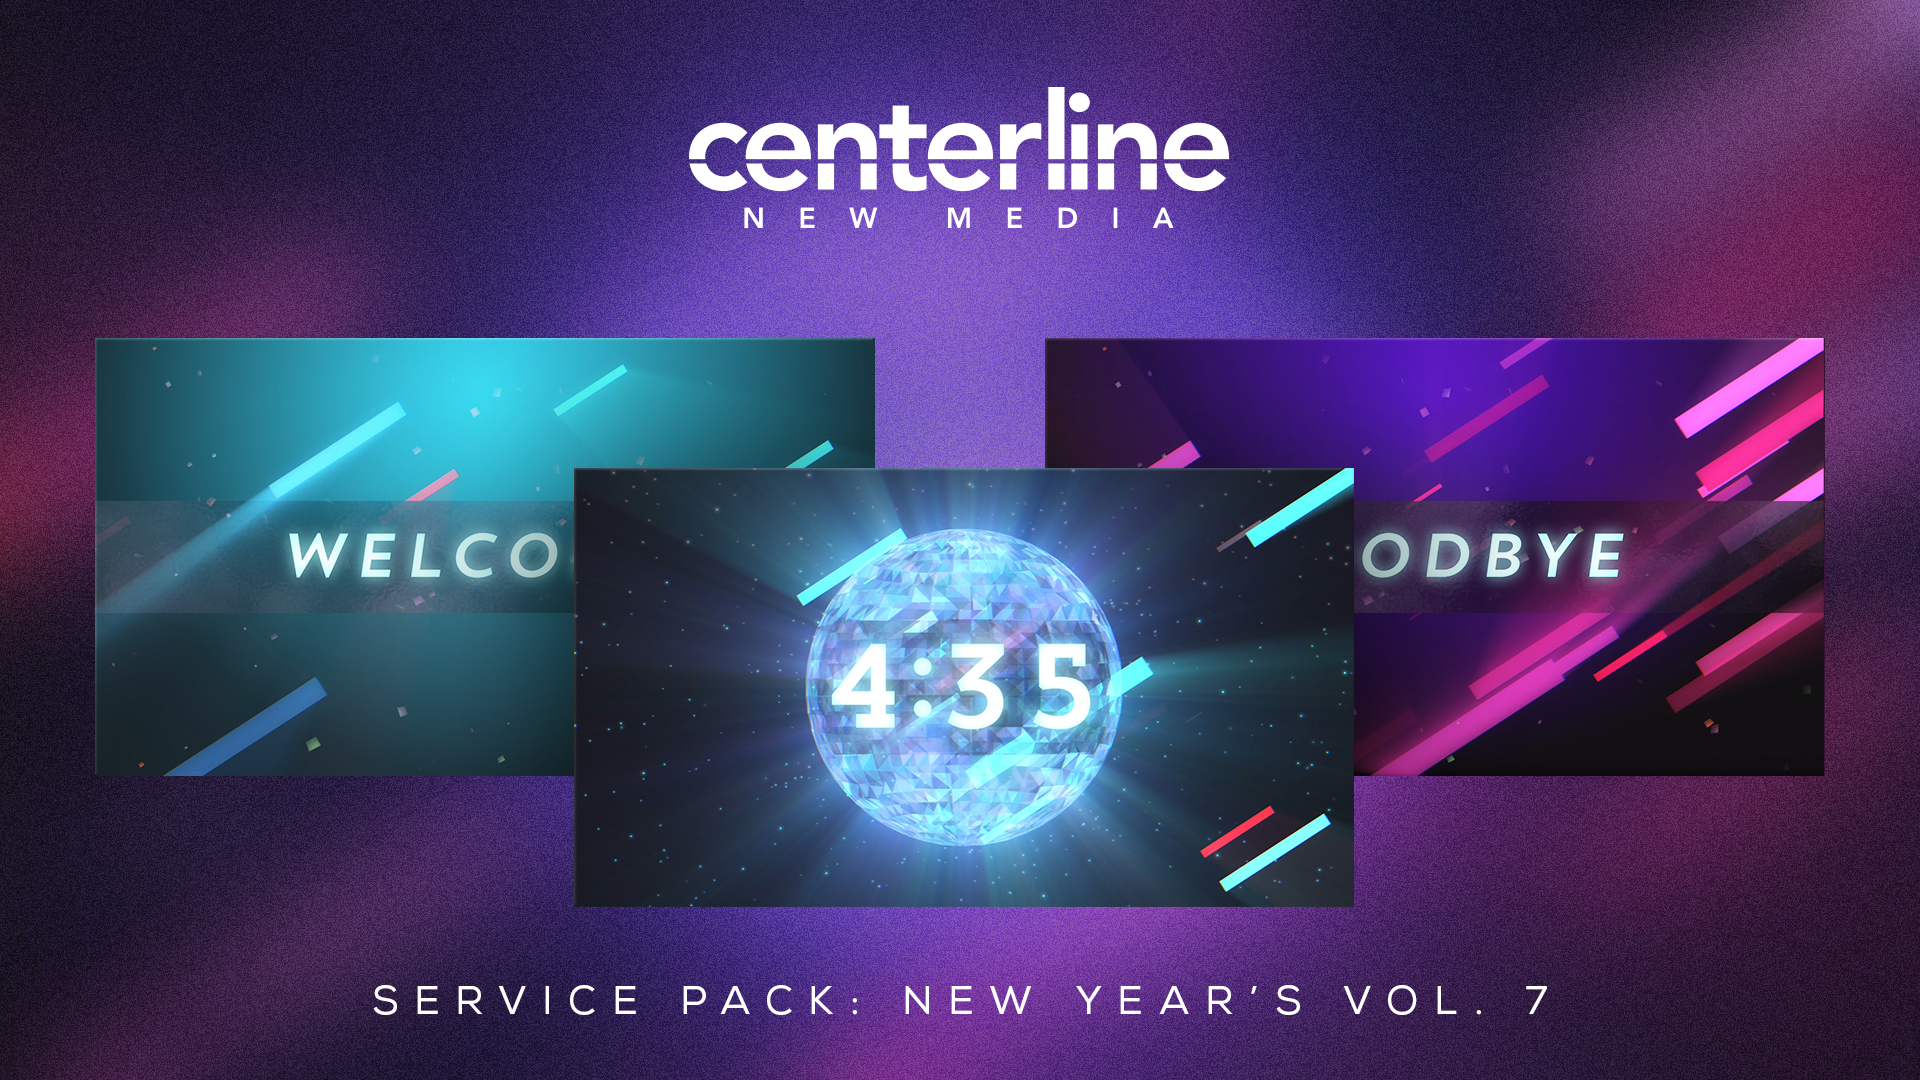 SERVICE PACK: NEW YEAR'S VOL. 7